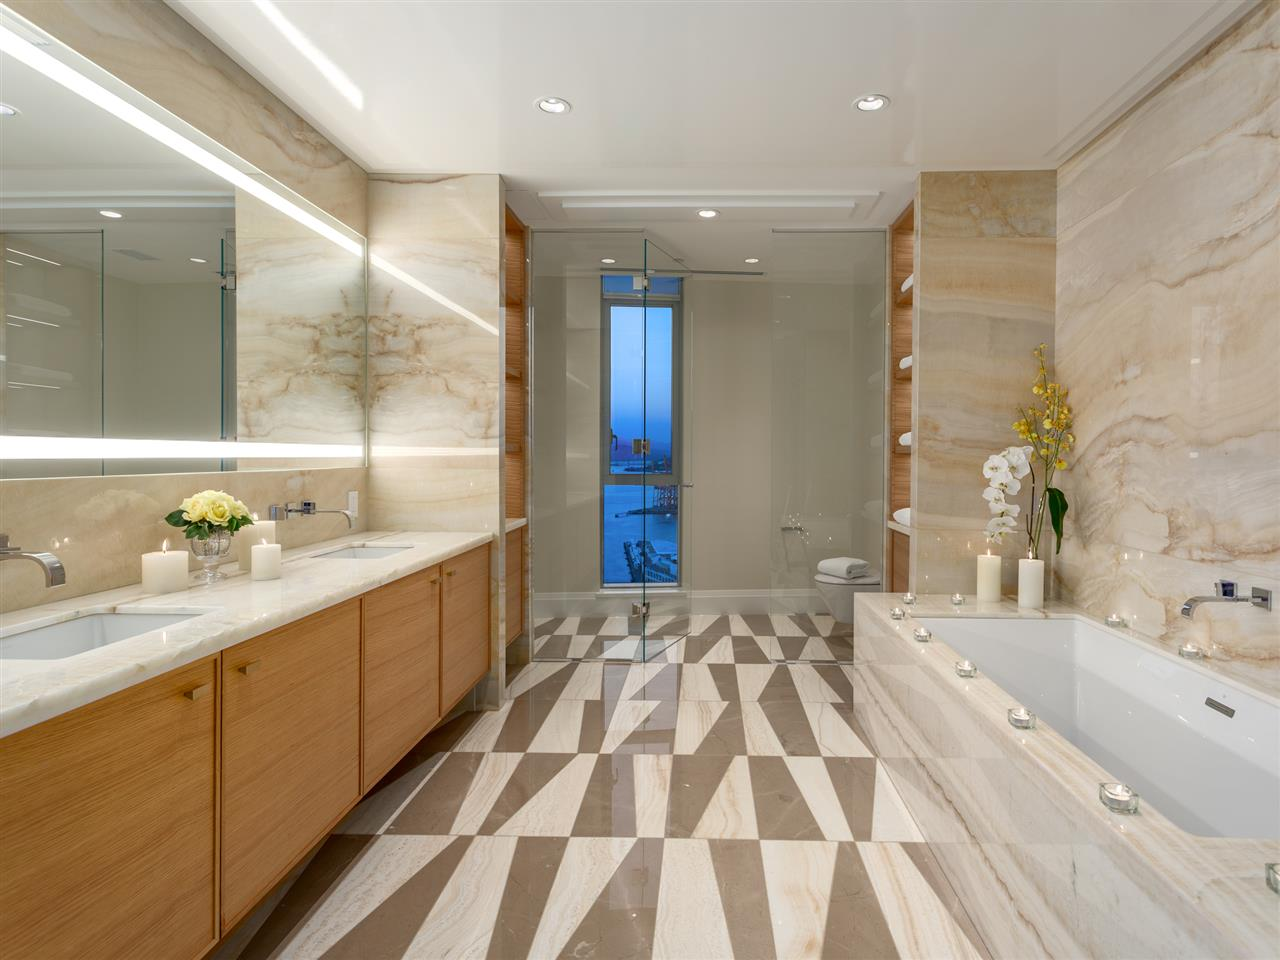 Luxury penthouse at 3101-277 Thurlow Street bathroom (MacDonald Realty)